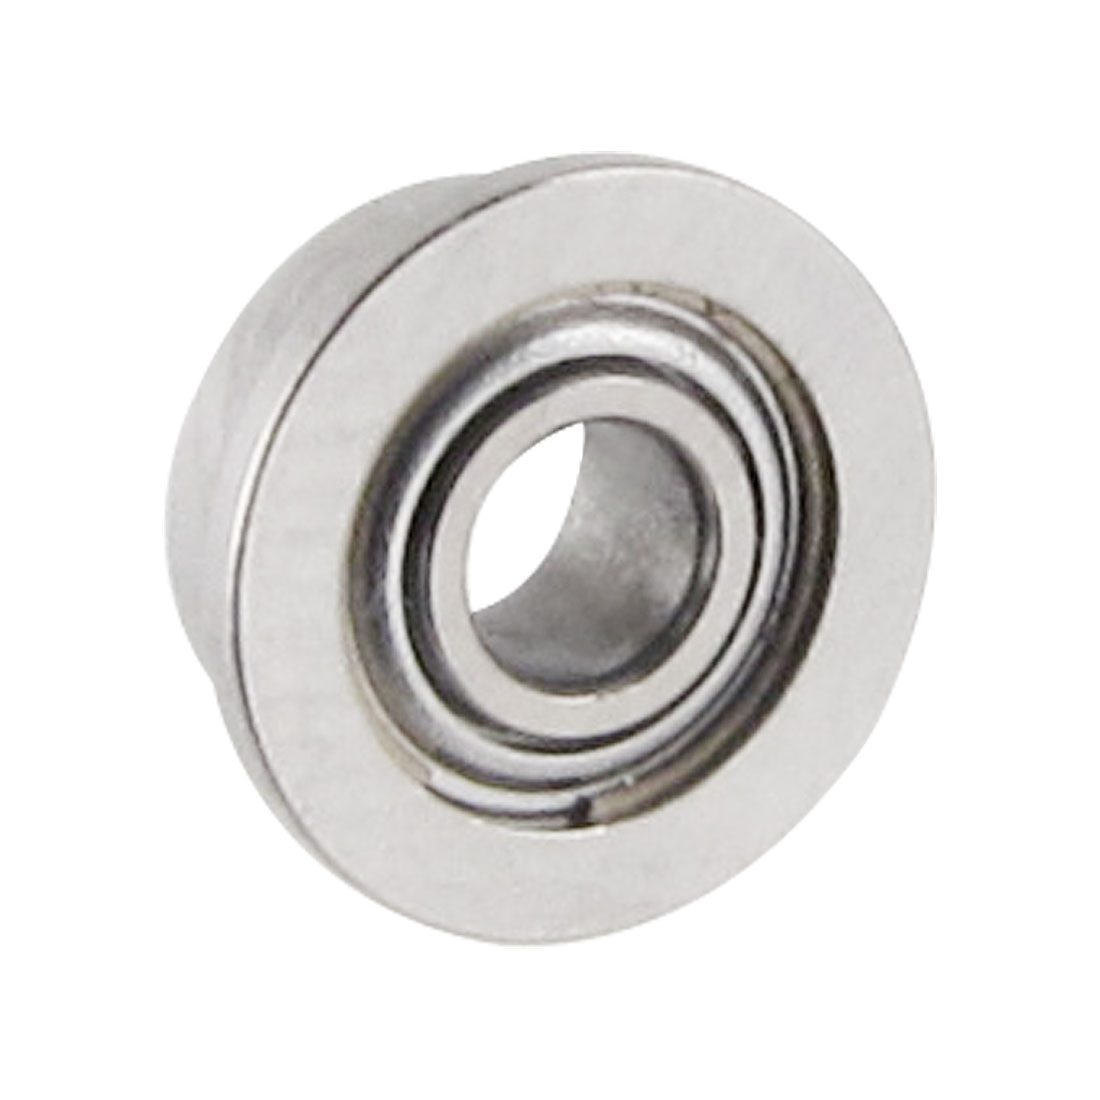 Flanged-2mm-x-5mm-x-2-3mm-Stainless-Steel-Shields-Deep-Groove-Ball-Bearing